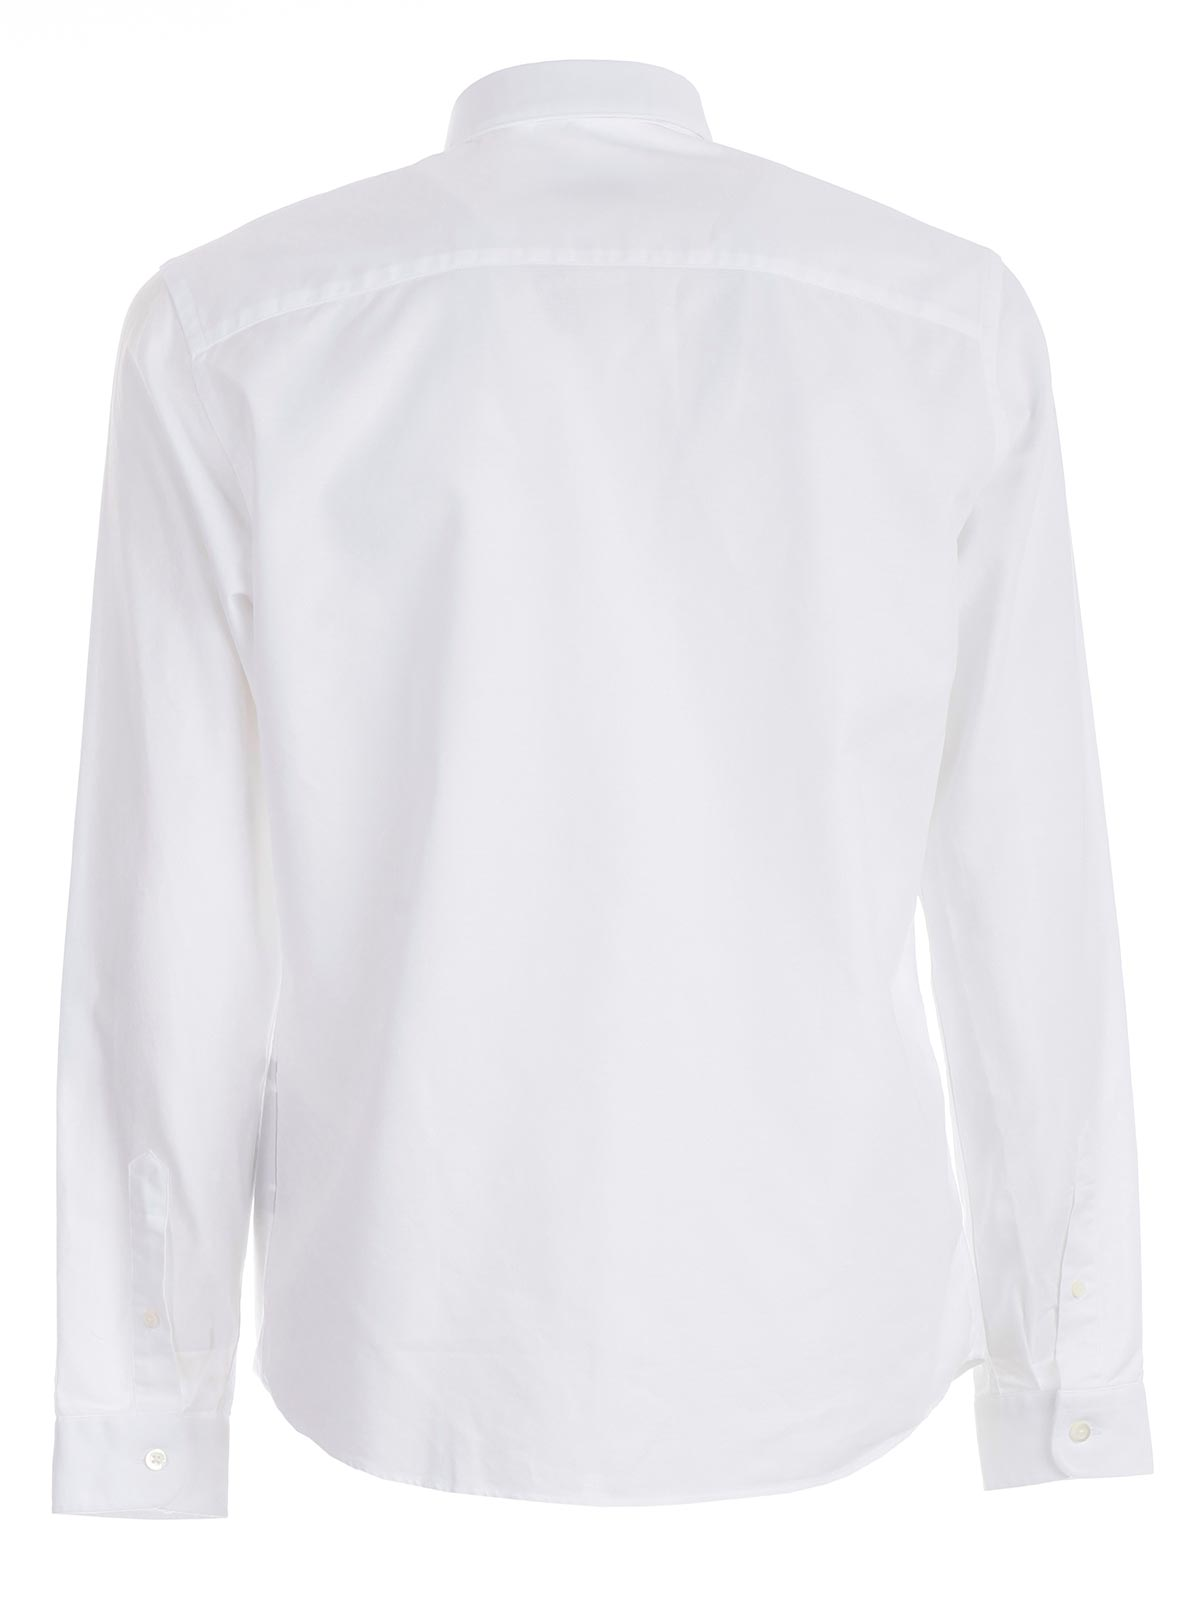 Picture of Ami Alexandre Mattiussi Shirt